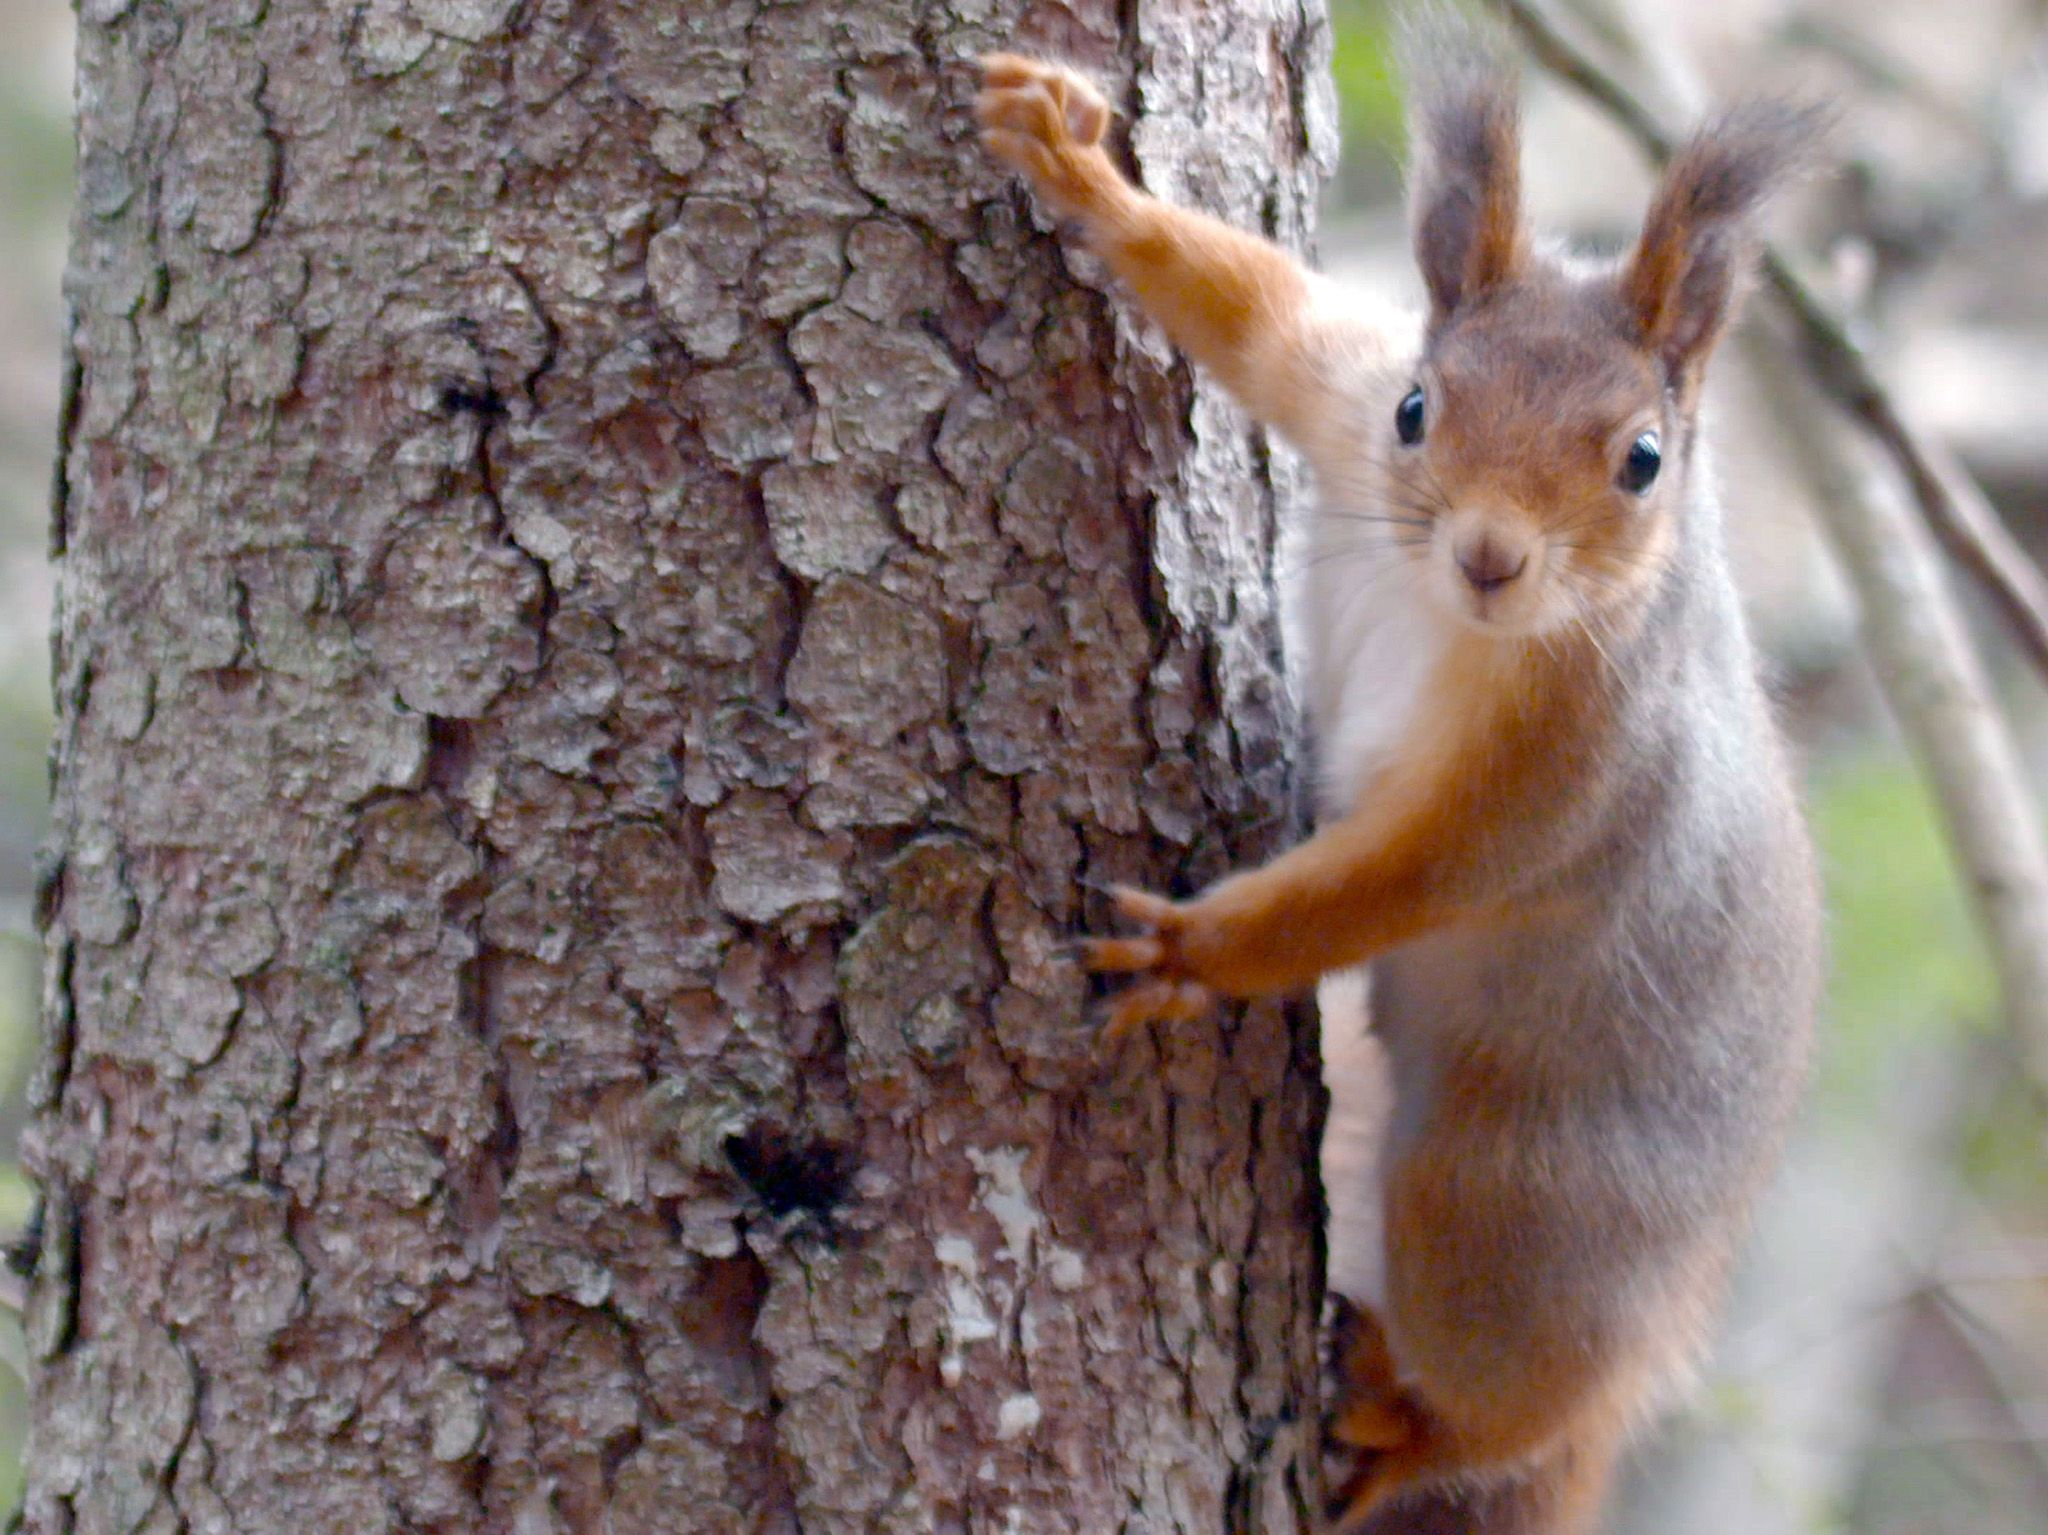 Squirrel climbing a tree. This image is from Wild Scandinavia. [Photo of the day - أغسطس 2019]